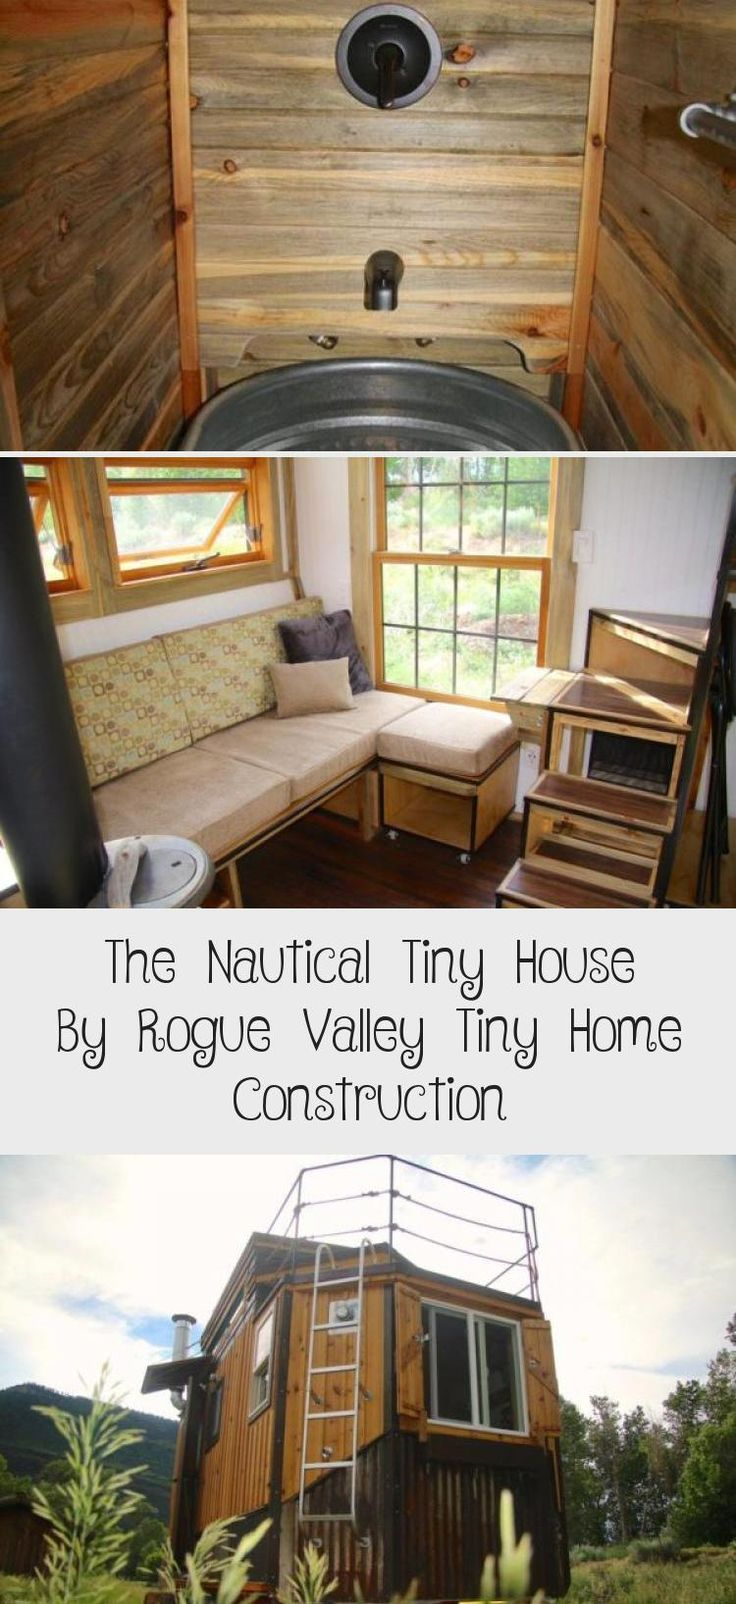 The Nautical Tiny House By Rogue Valley Tiny Home